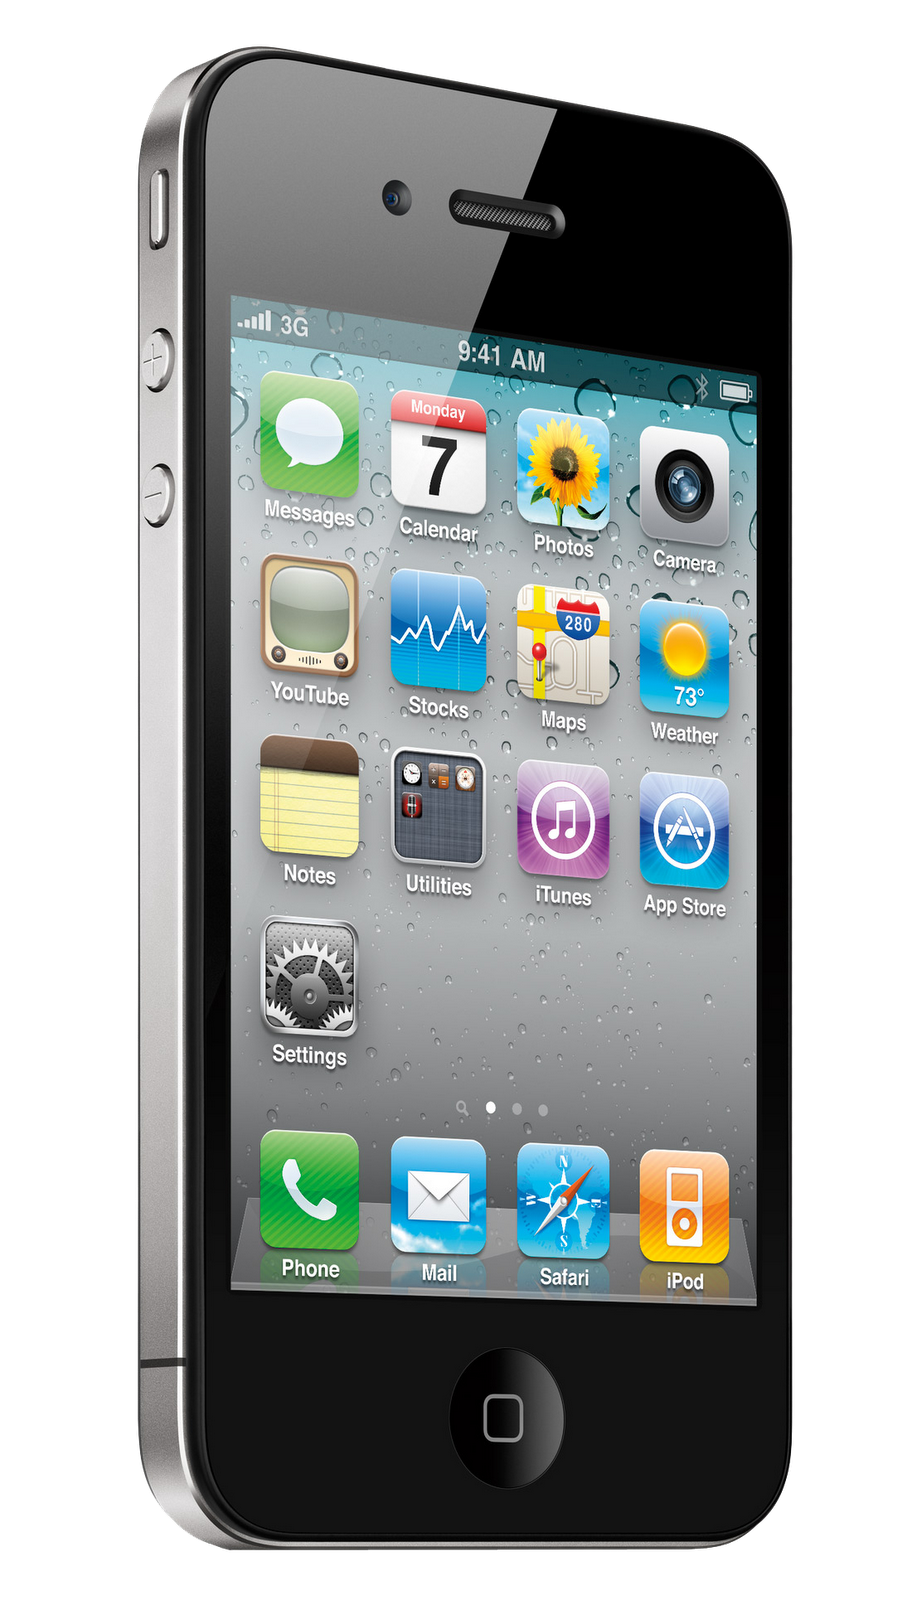 iphone 4 high resolution images for designers saudi